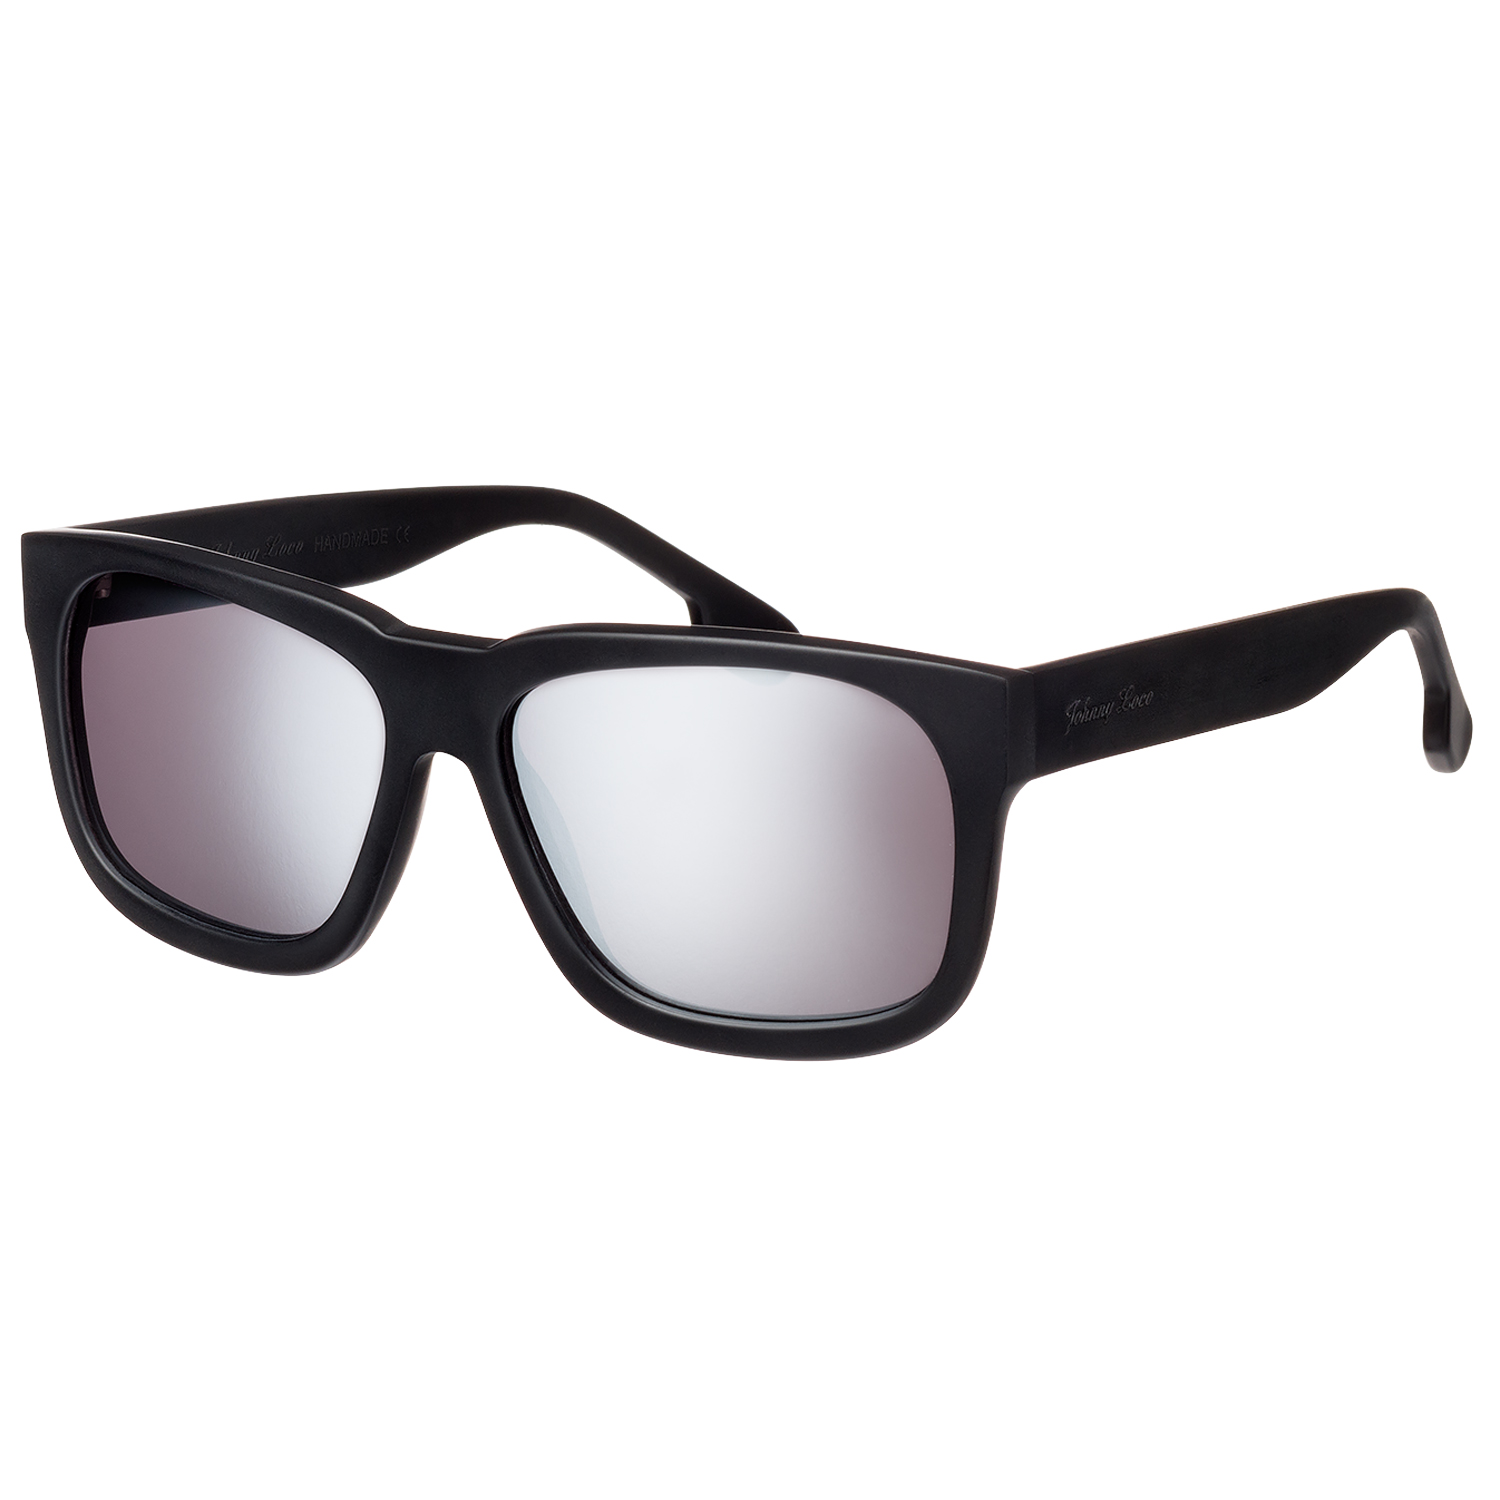 Johnny Loco Sunglasses JLE1505 A3-S 54 The Dude Black